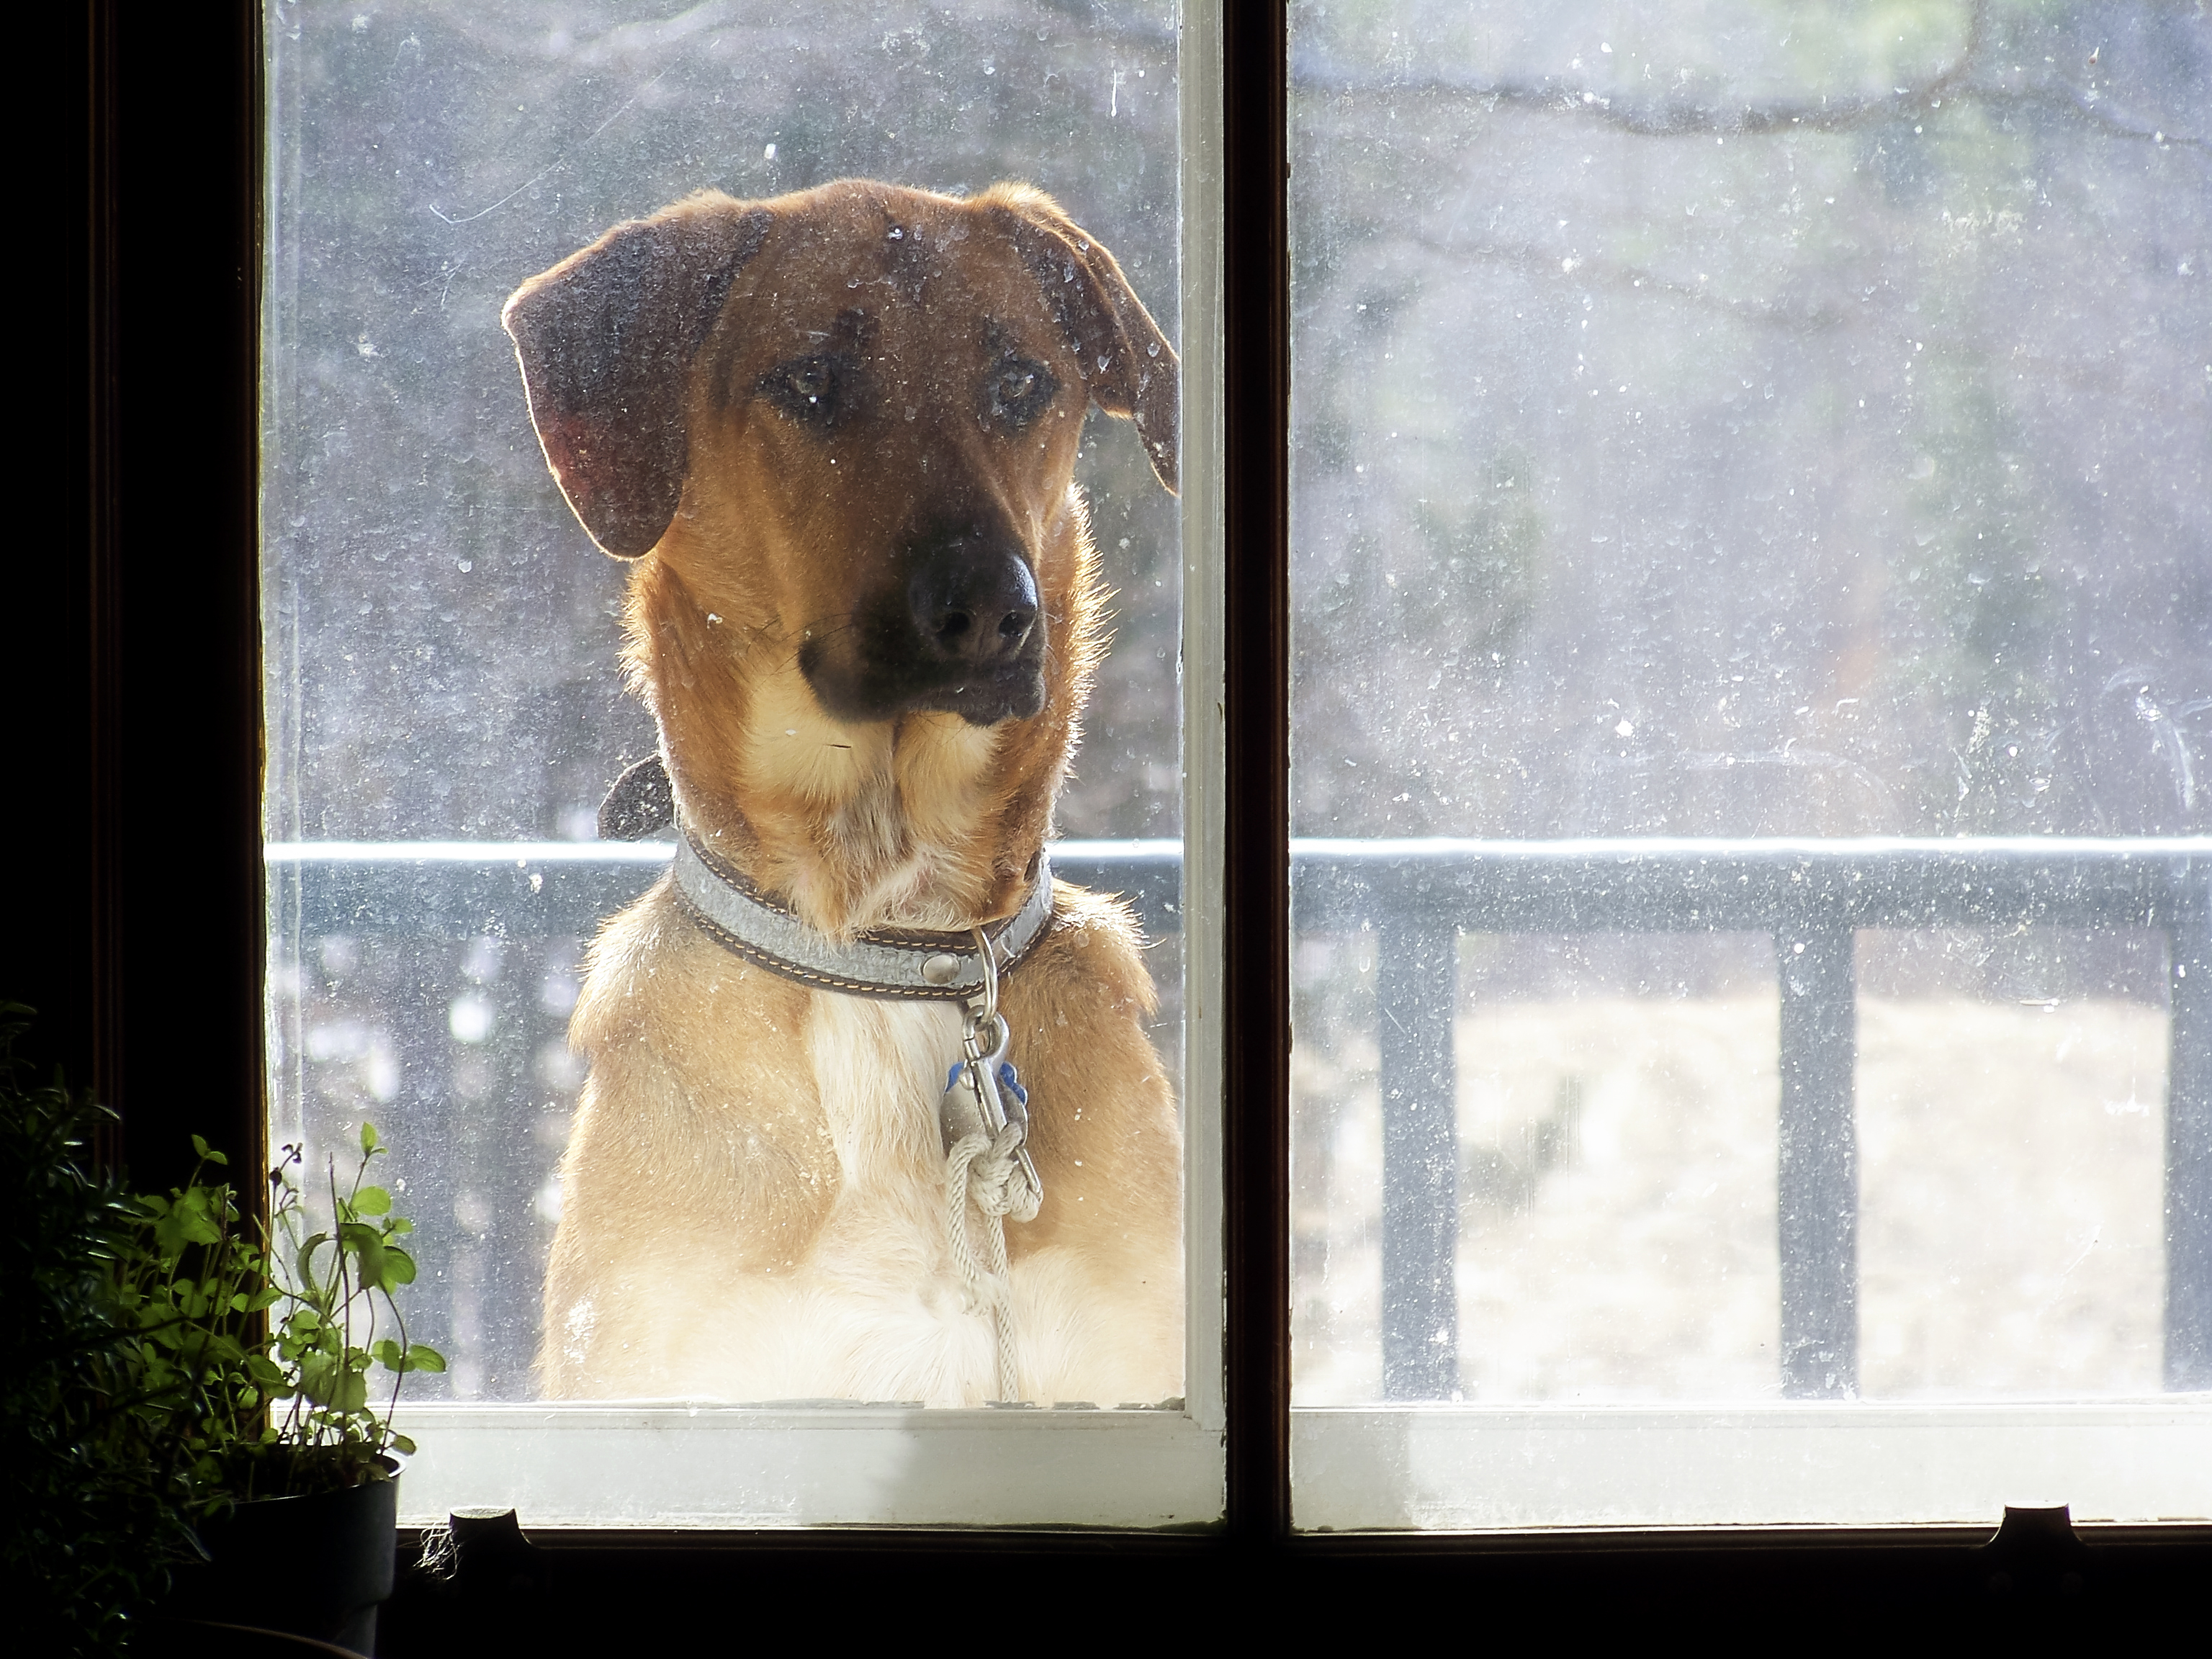 A dog looking in a window.